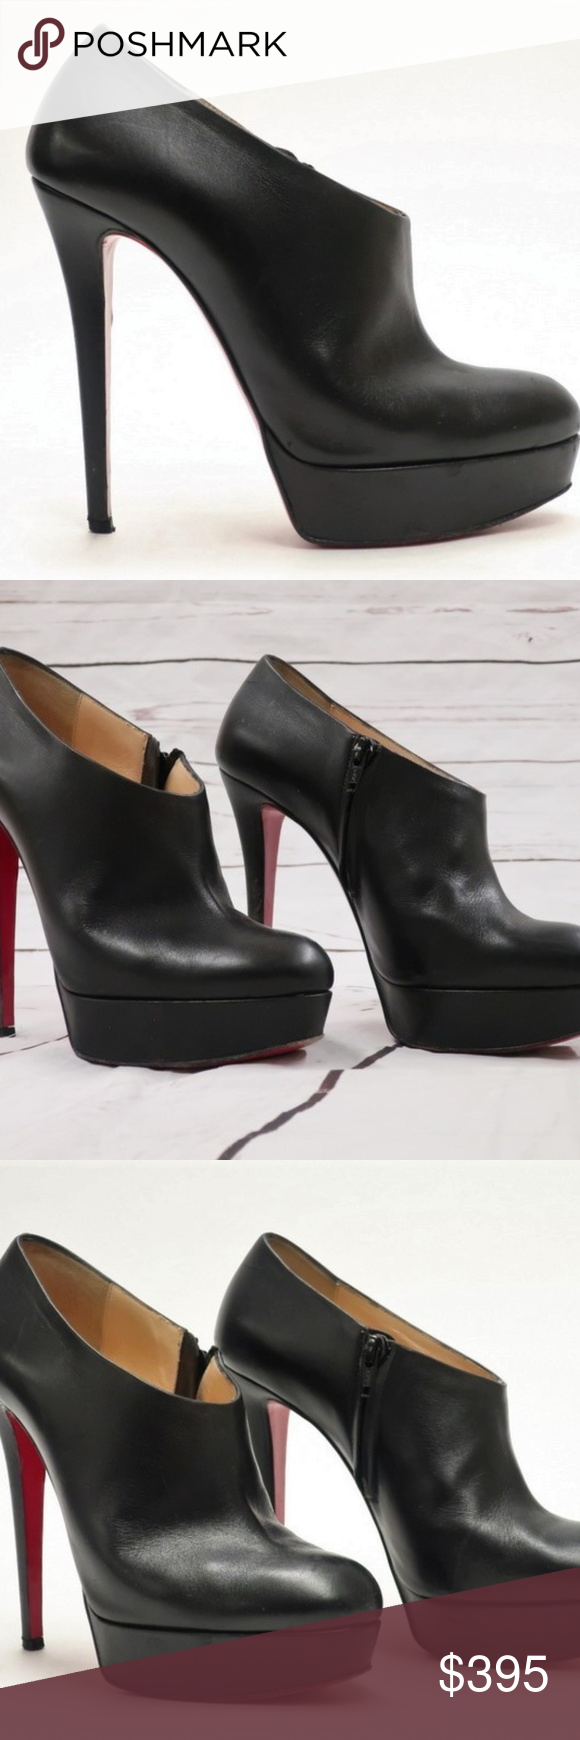 5bba7730351 Christian Louboutin Moulage 140 Ankle Boot ITEM: Christian Louboutin ...